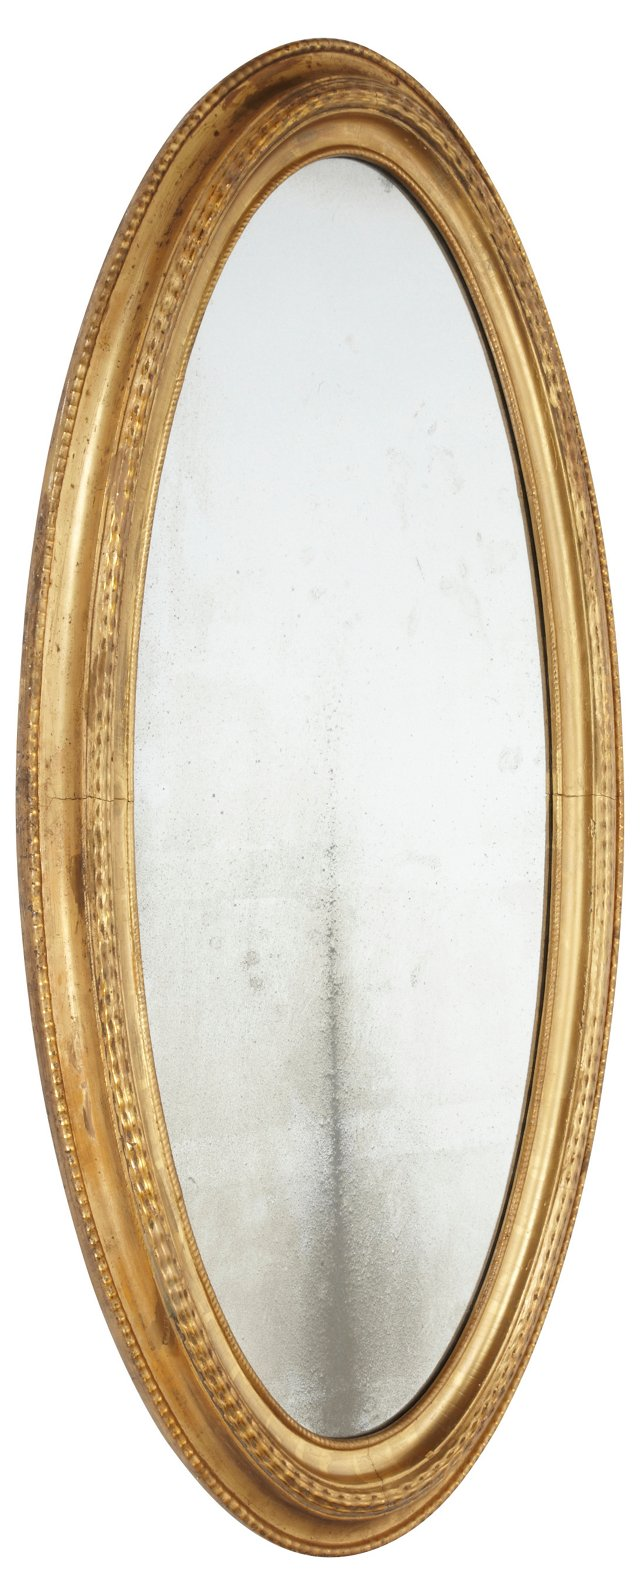 Antique Oval Gilded Mirror